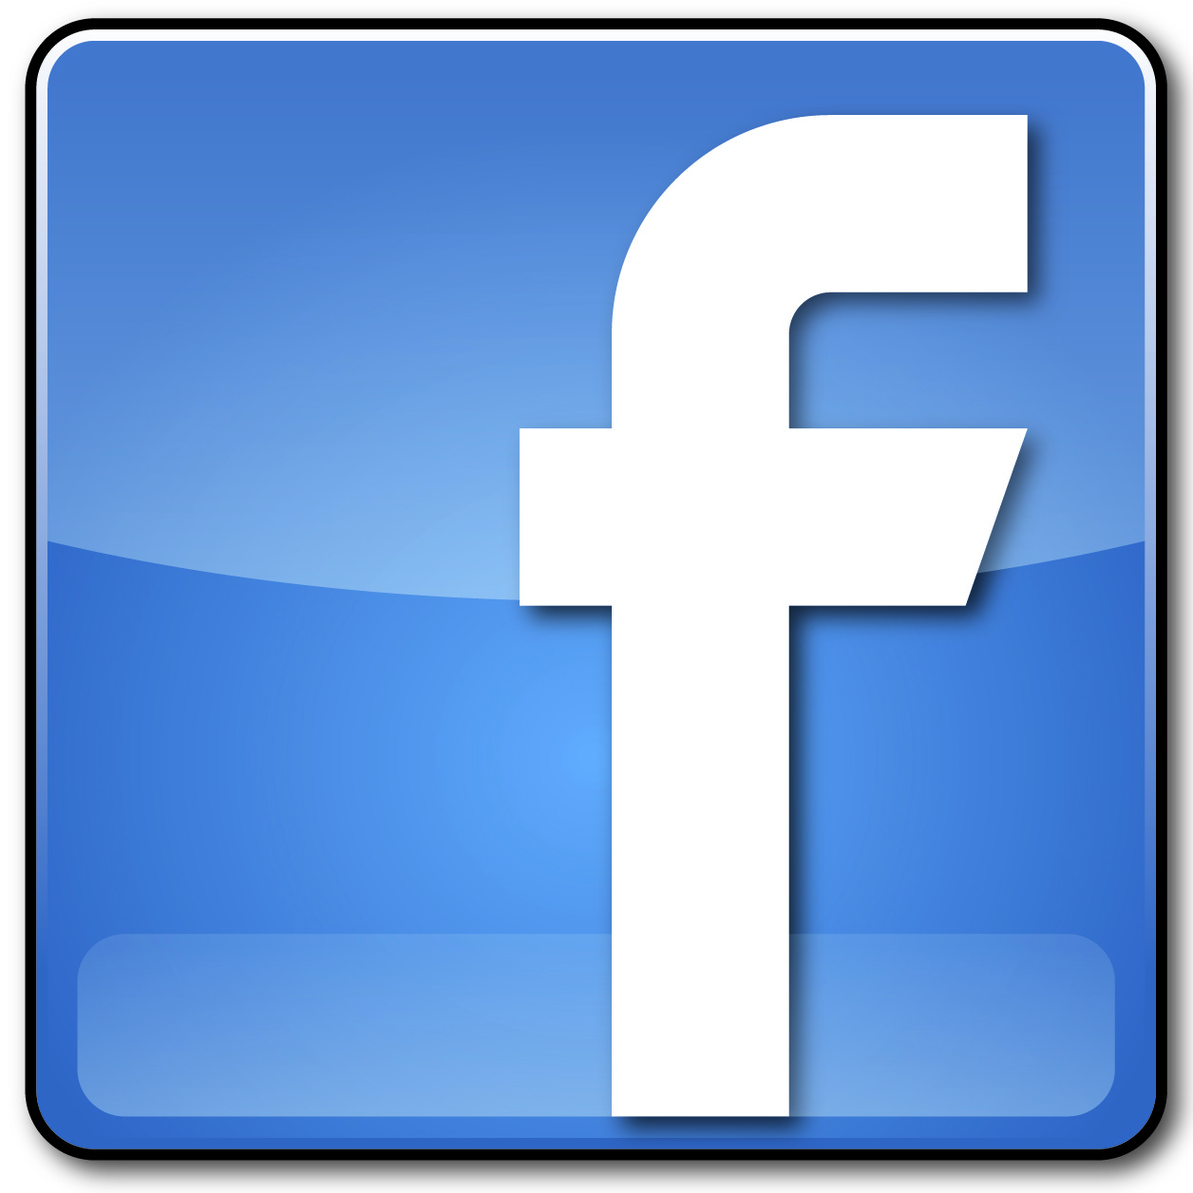 Facebook clipart free to use clip art resource.